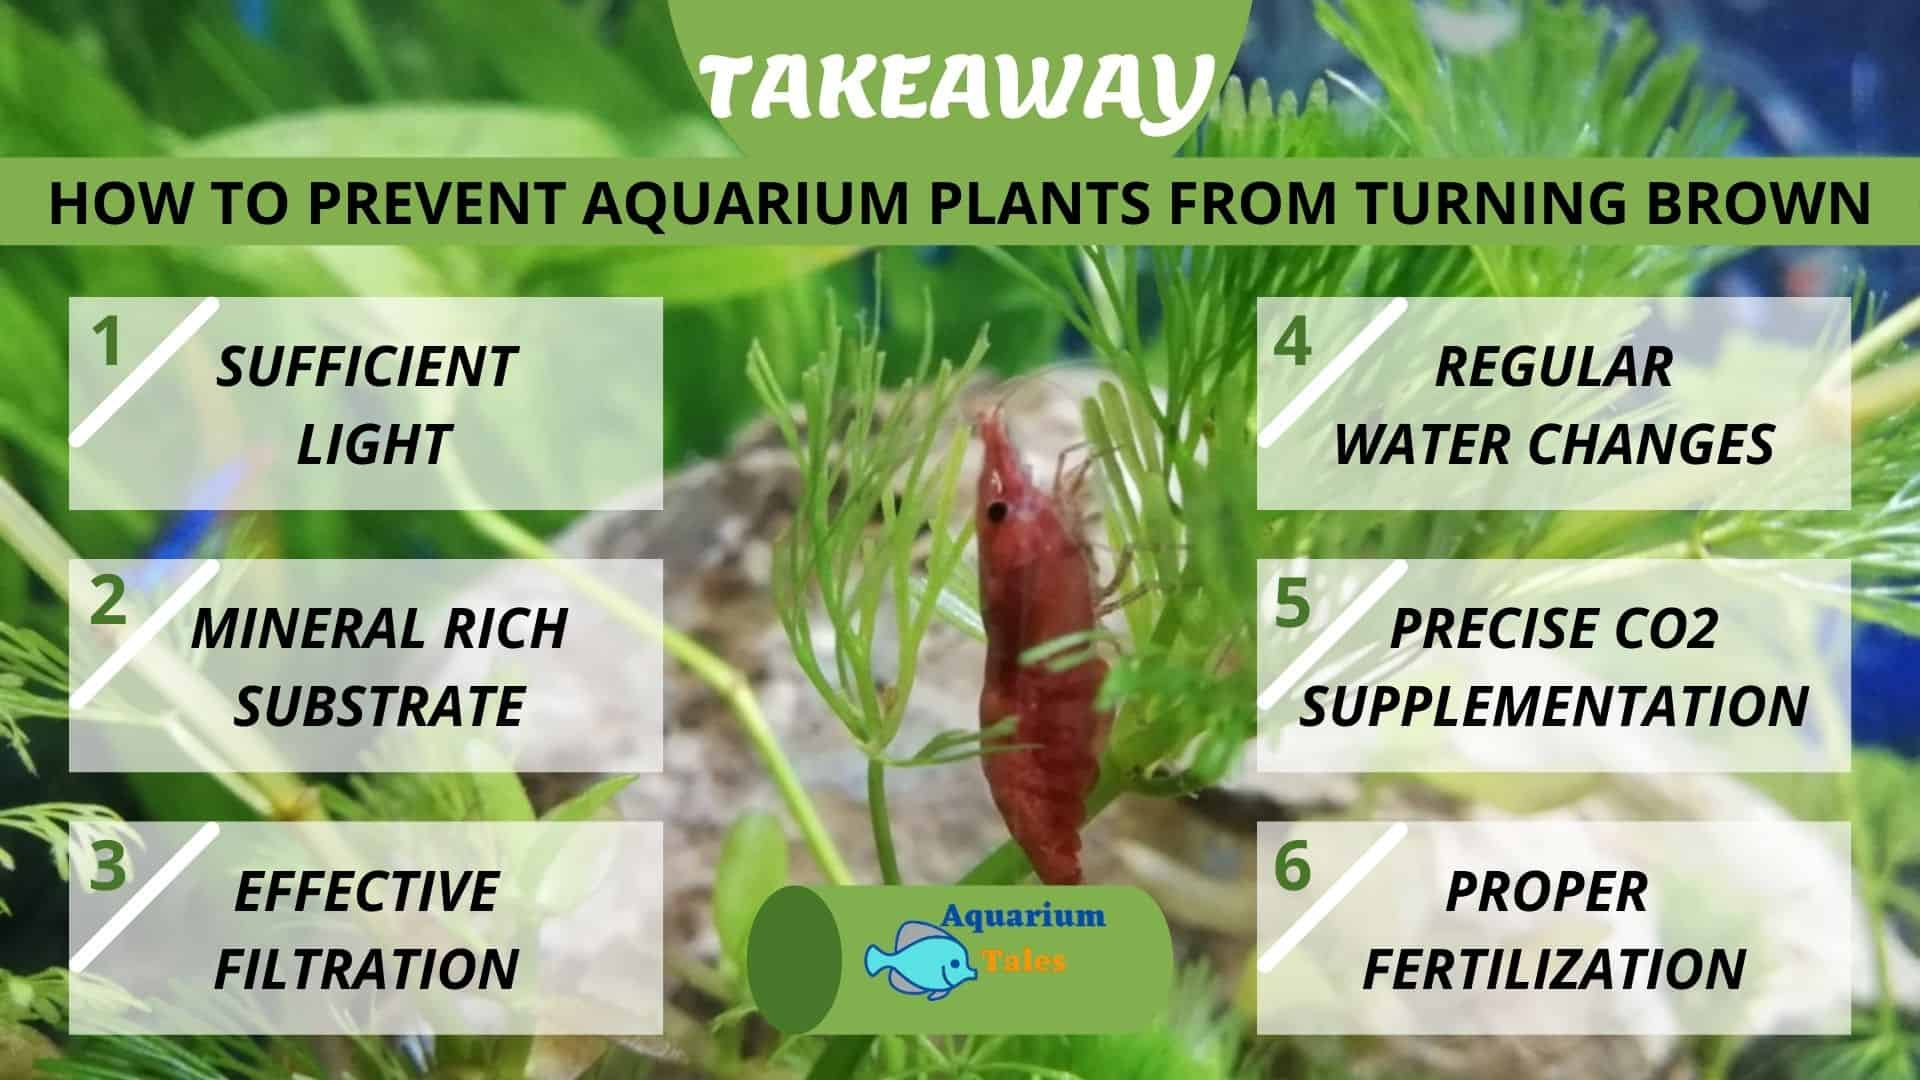 how to prevent aquarium plants from turning brown - takeaway